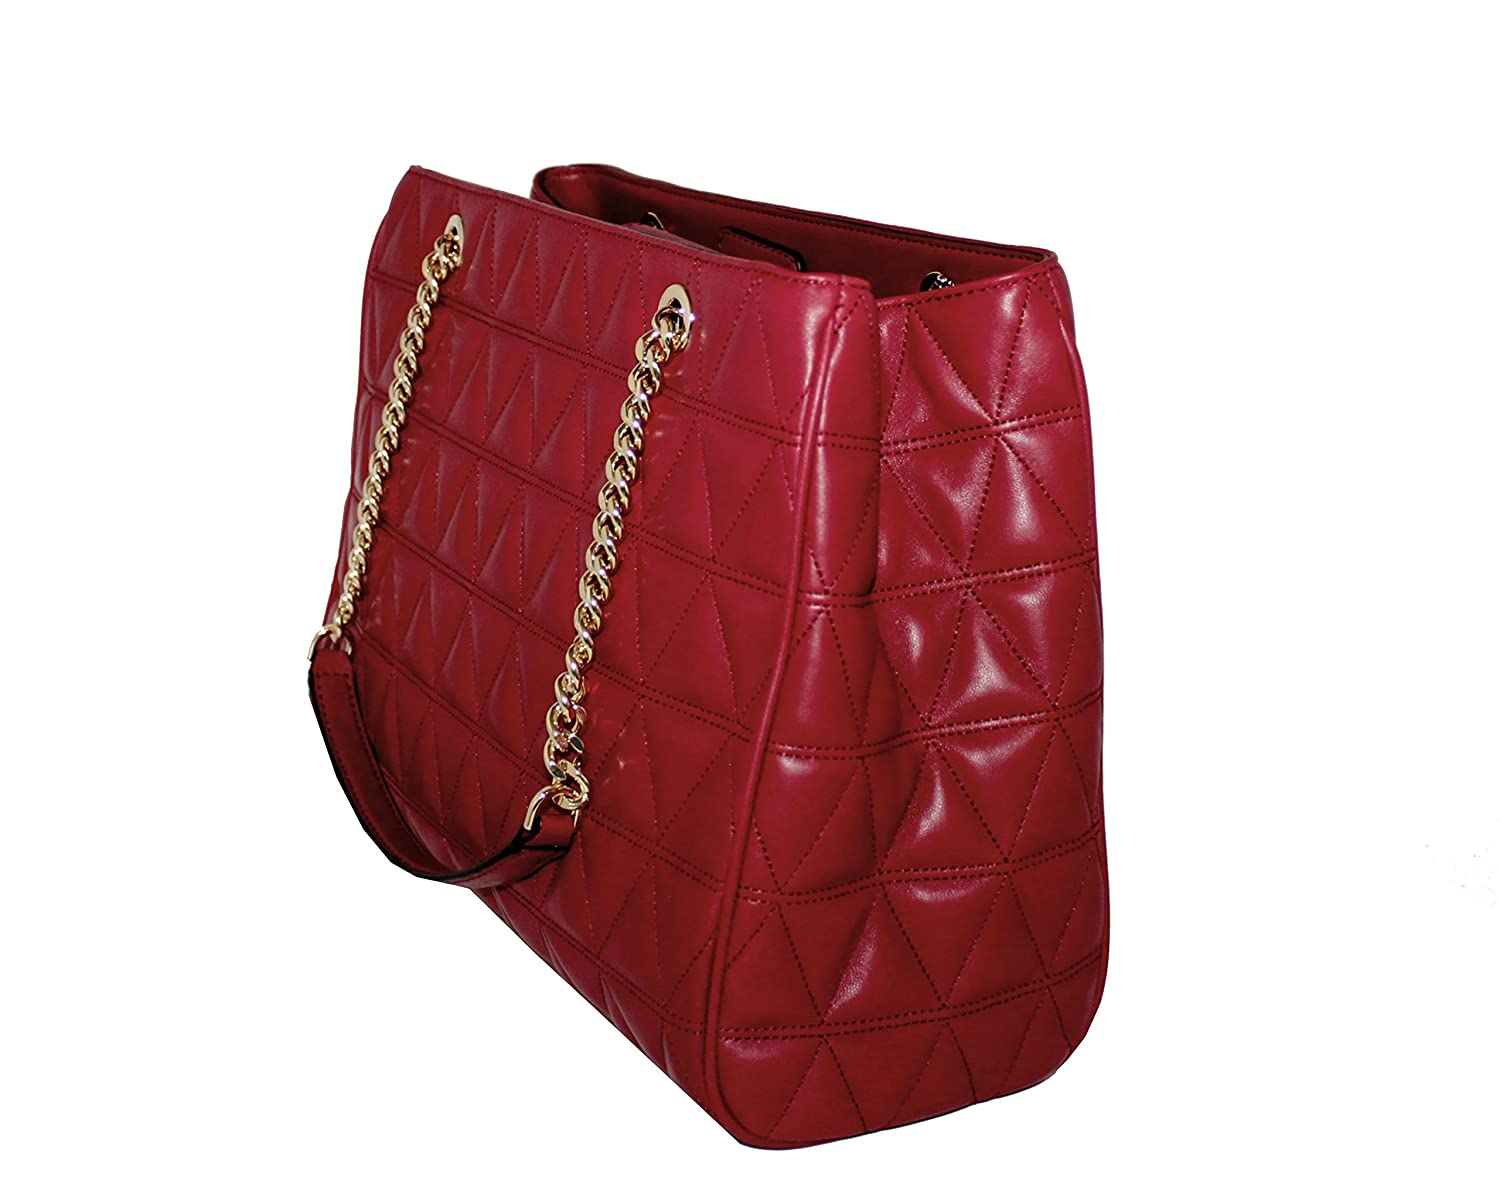 352e3697c40d MICHAEL Michael Kors Women s Susannah Large Tote Soft Leather Handbag ( Cherry)  Handbags  Amazon.com